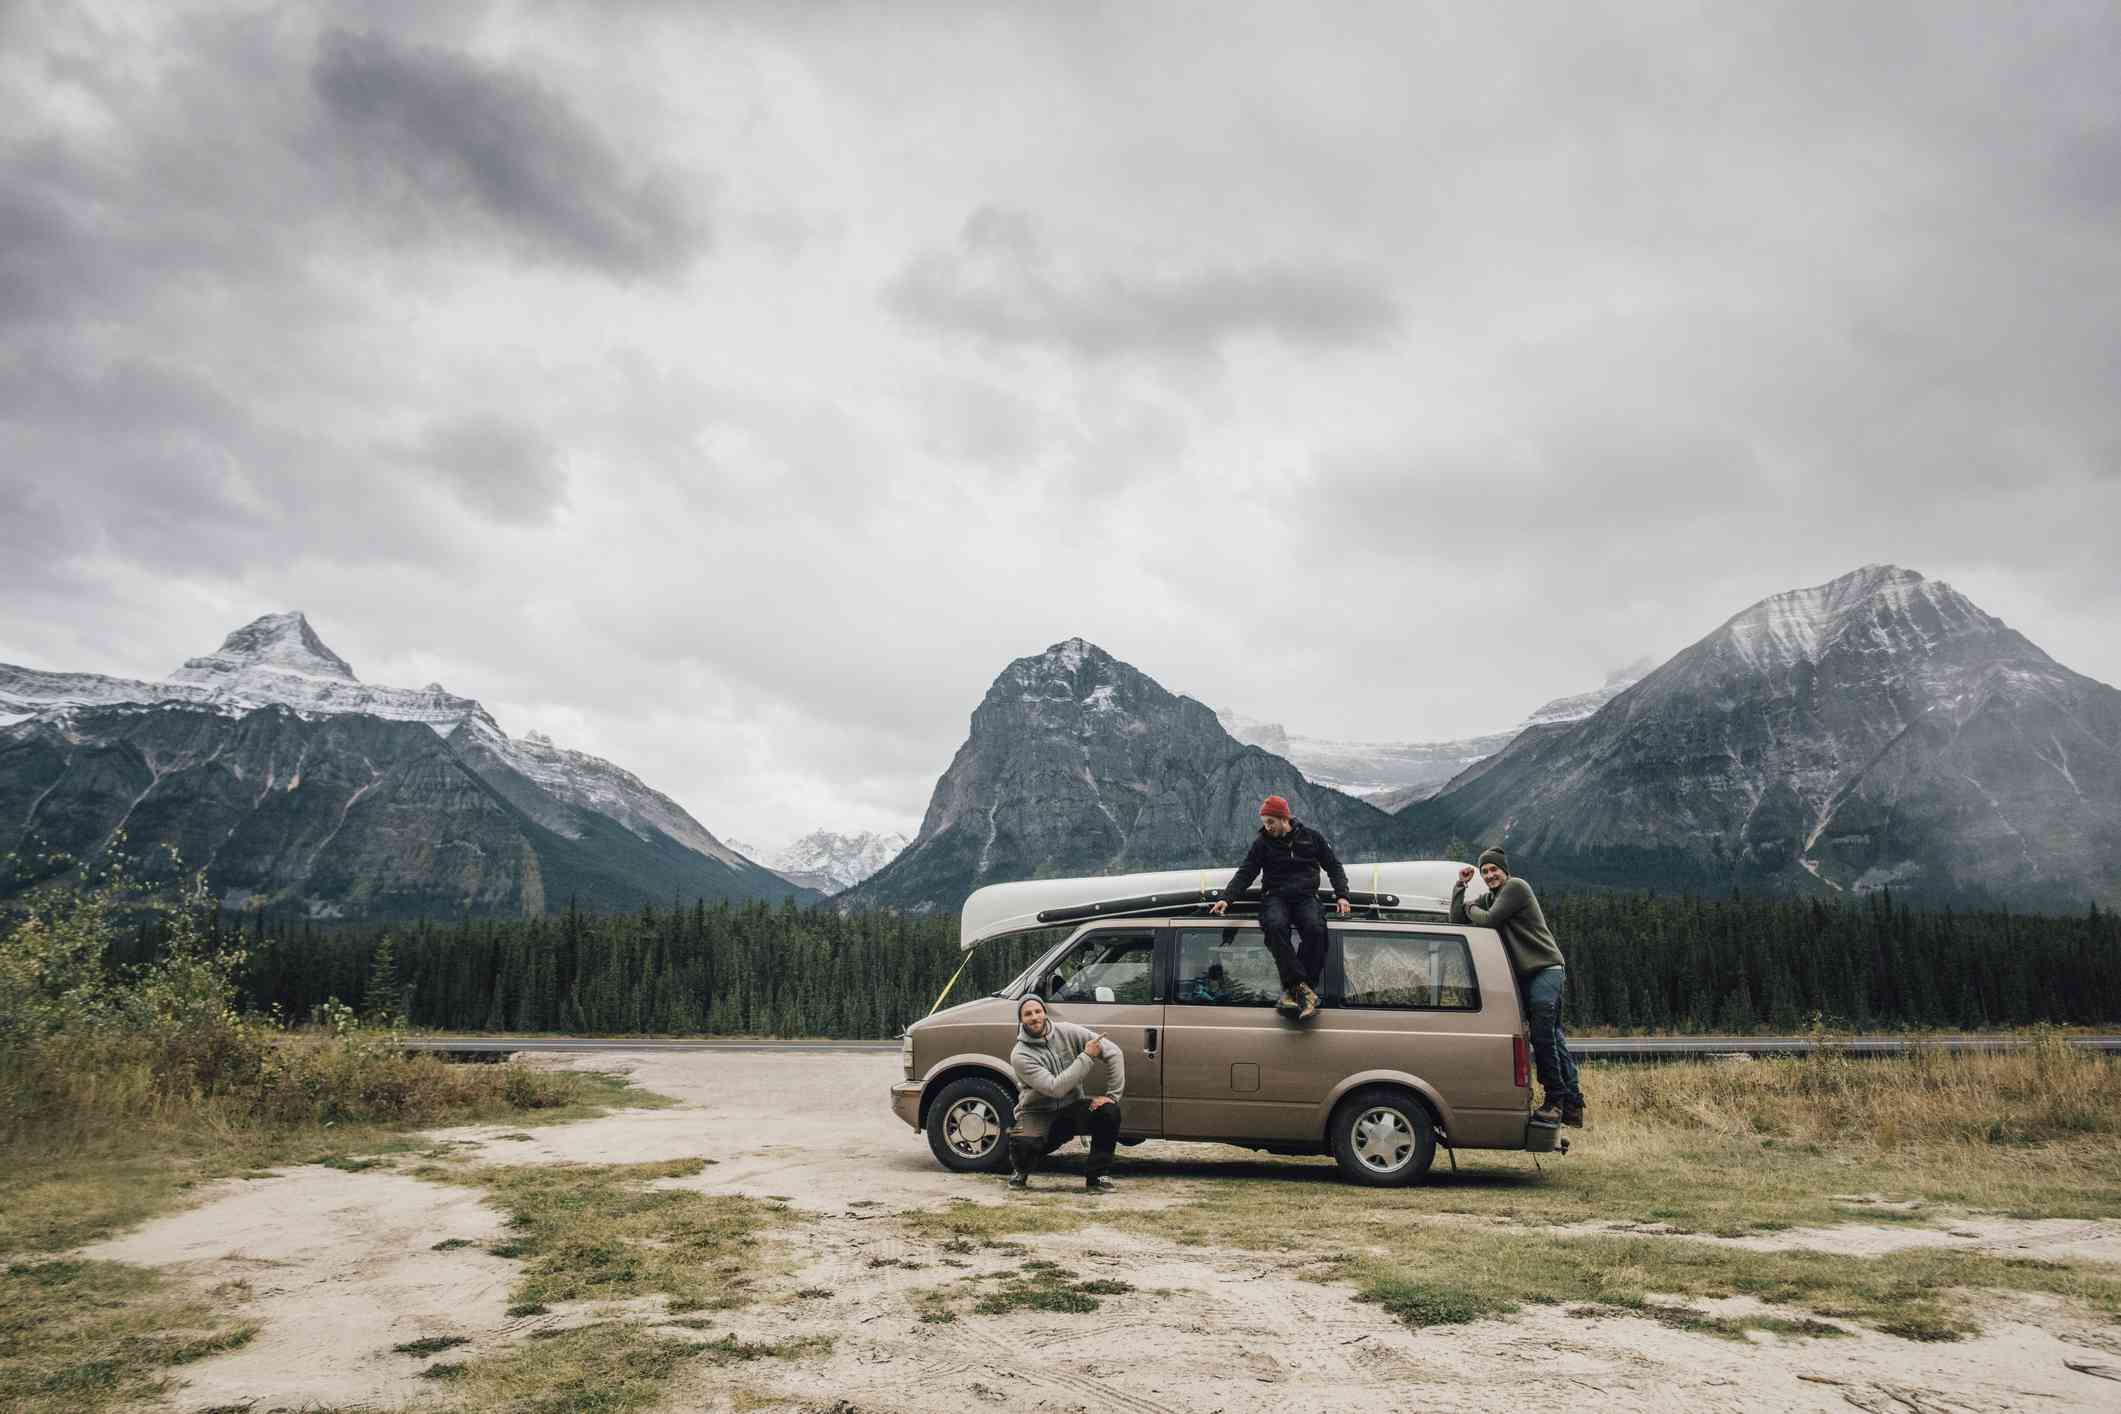 Three people with a van in the mountains, Canada